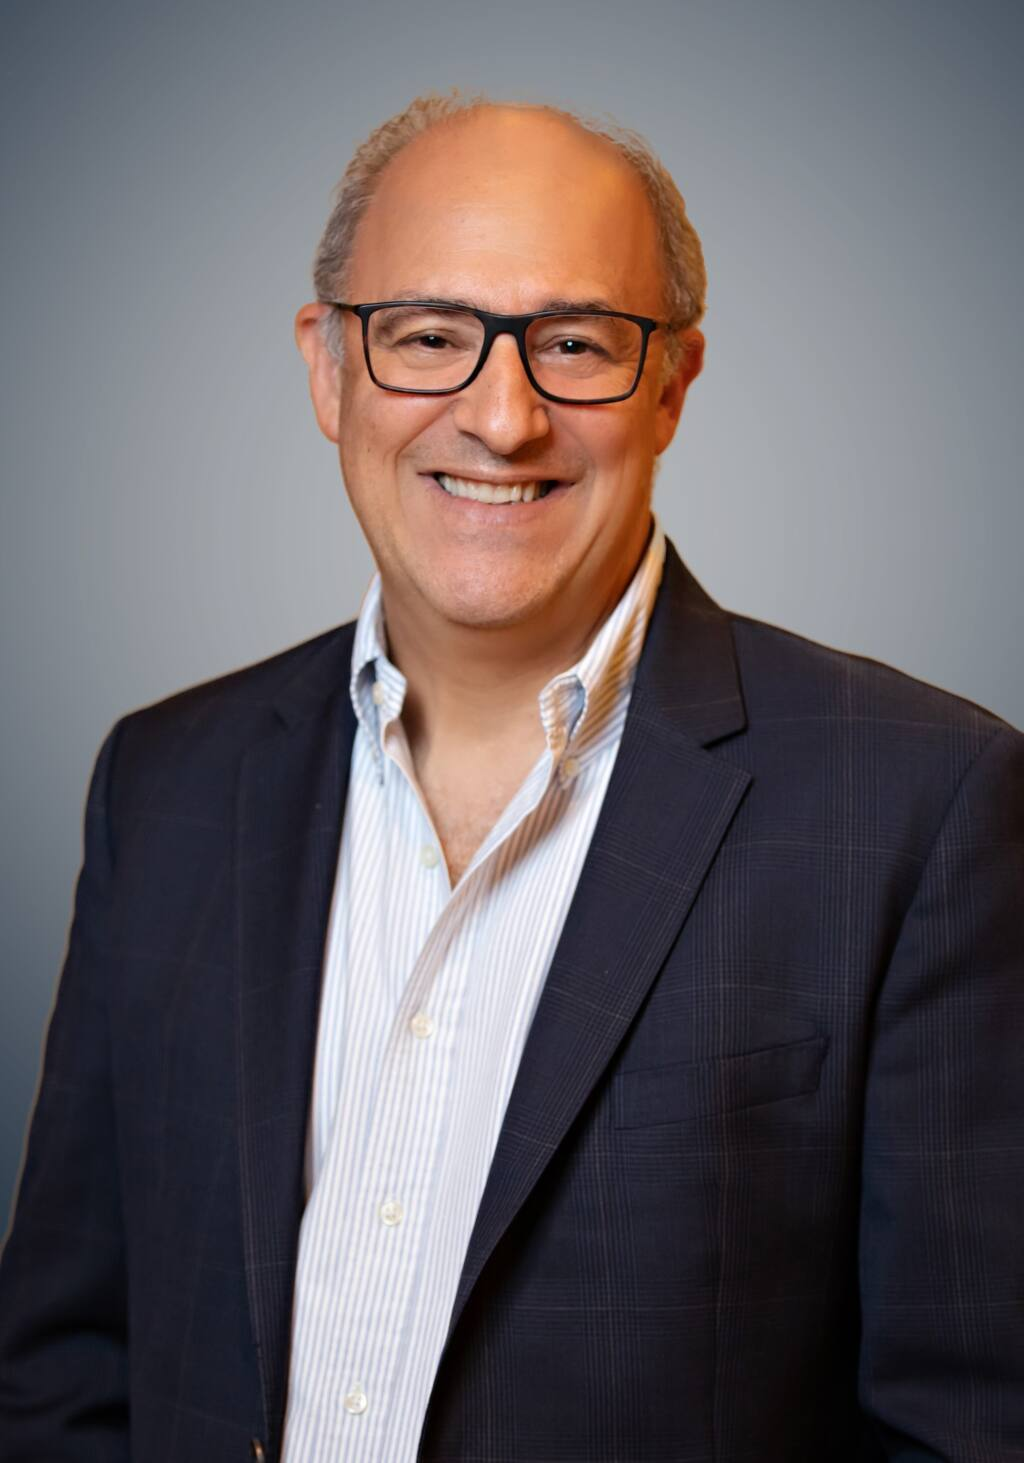 Beverage alcohol industry analyst Danny Brager joins Napa-based Azur Associates. (courtesy of Azur Associates) Oct. 5, 2019